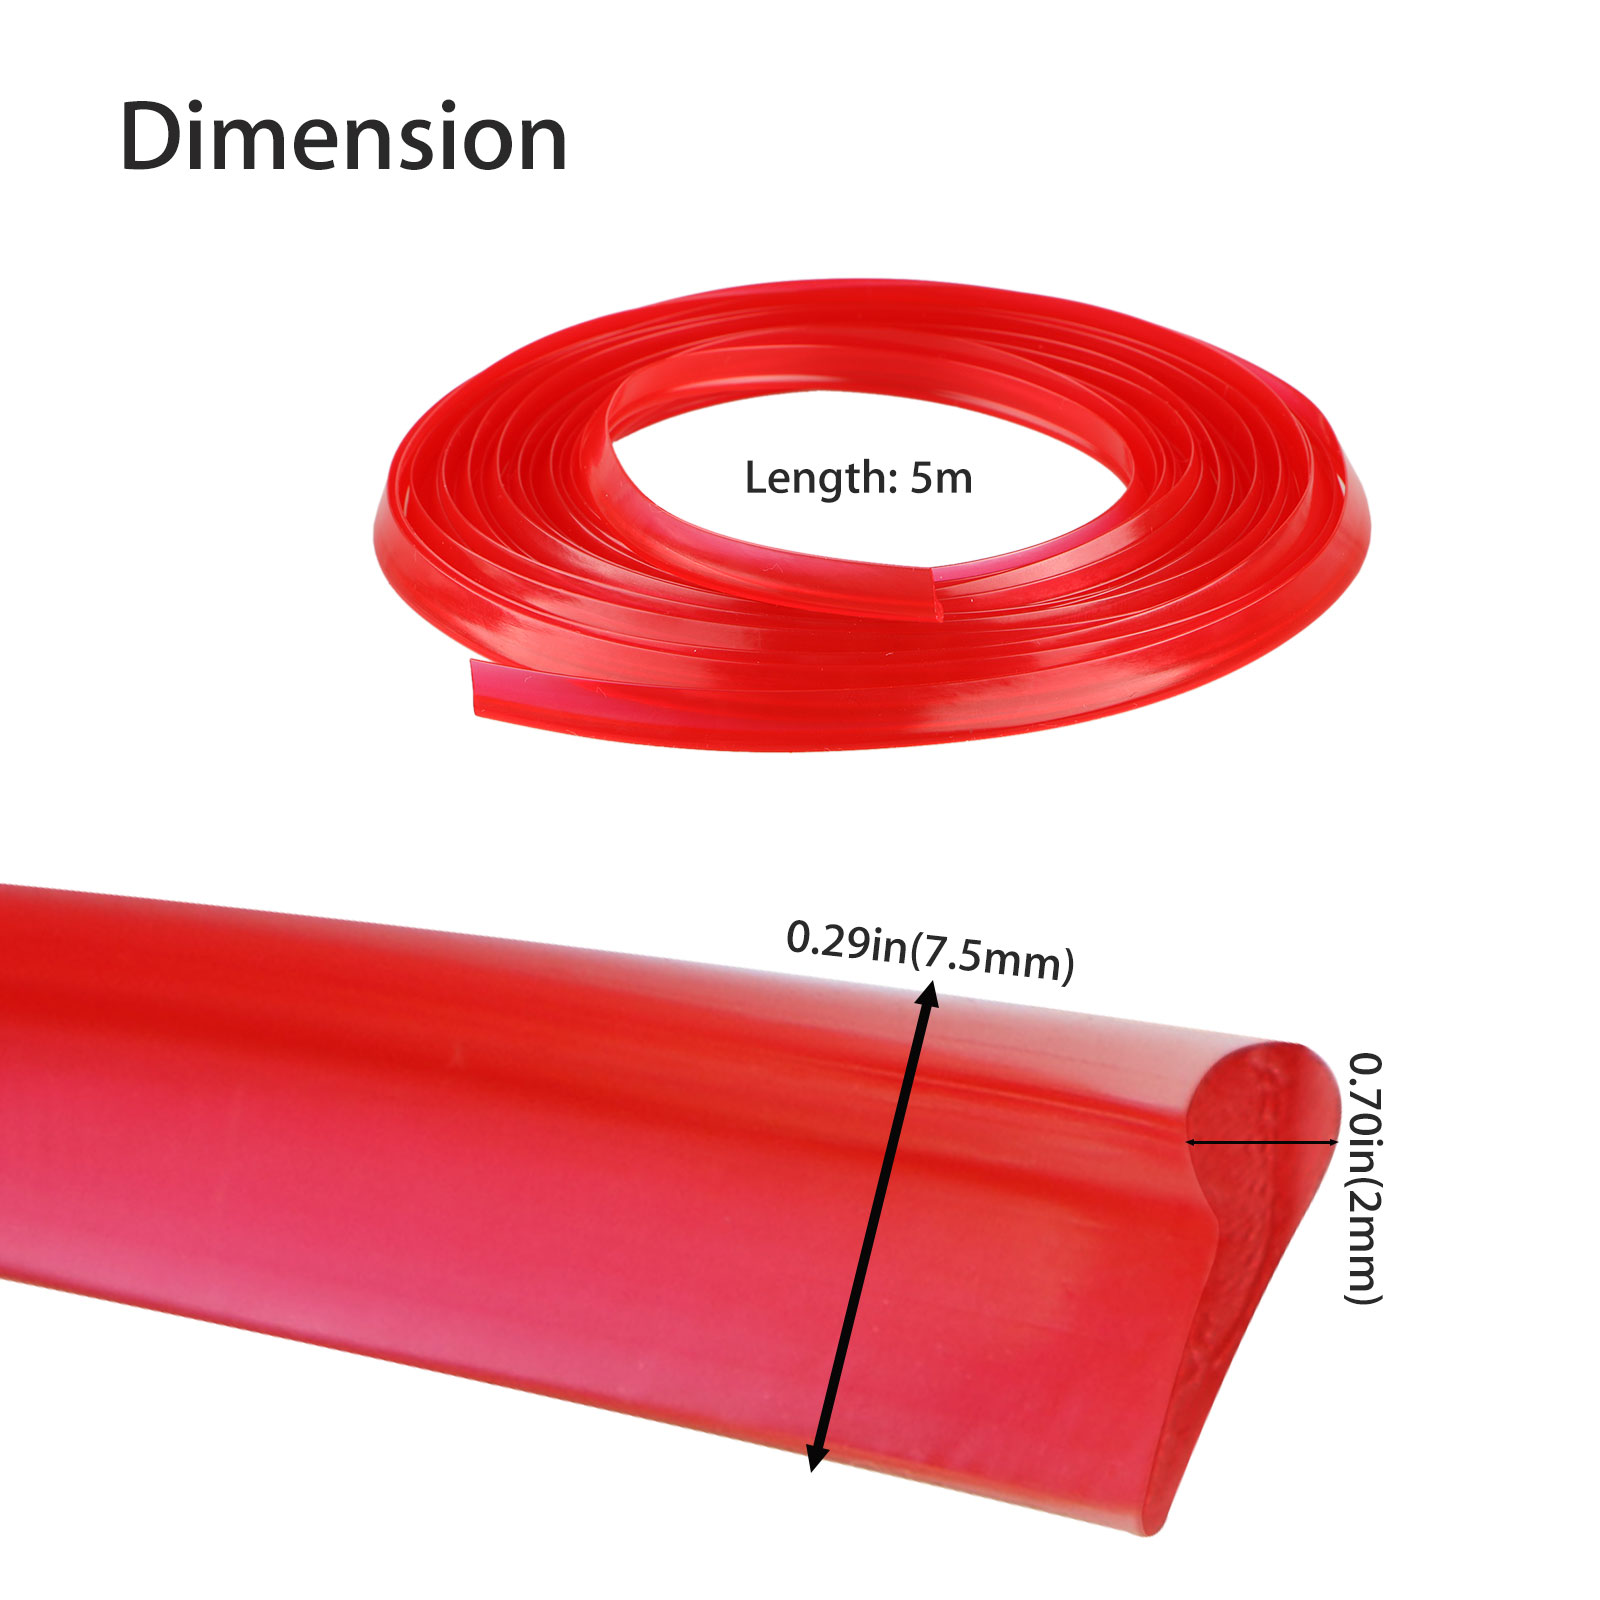 5M-Door-Gap-Trim-Molding-Moulding-Line-Edge-Strip-Red-For-Car-Interior-Accessory thumbnail 8